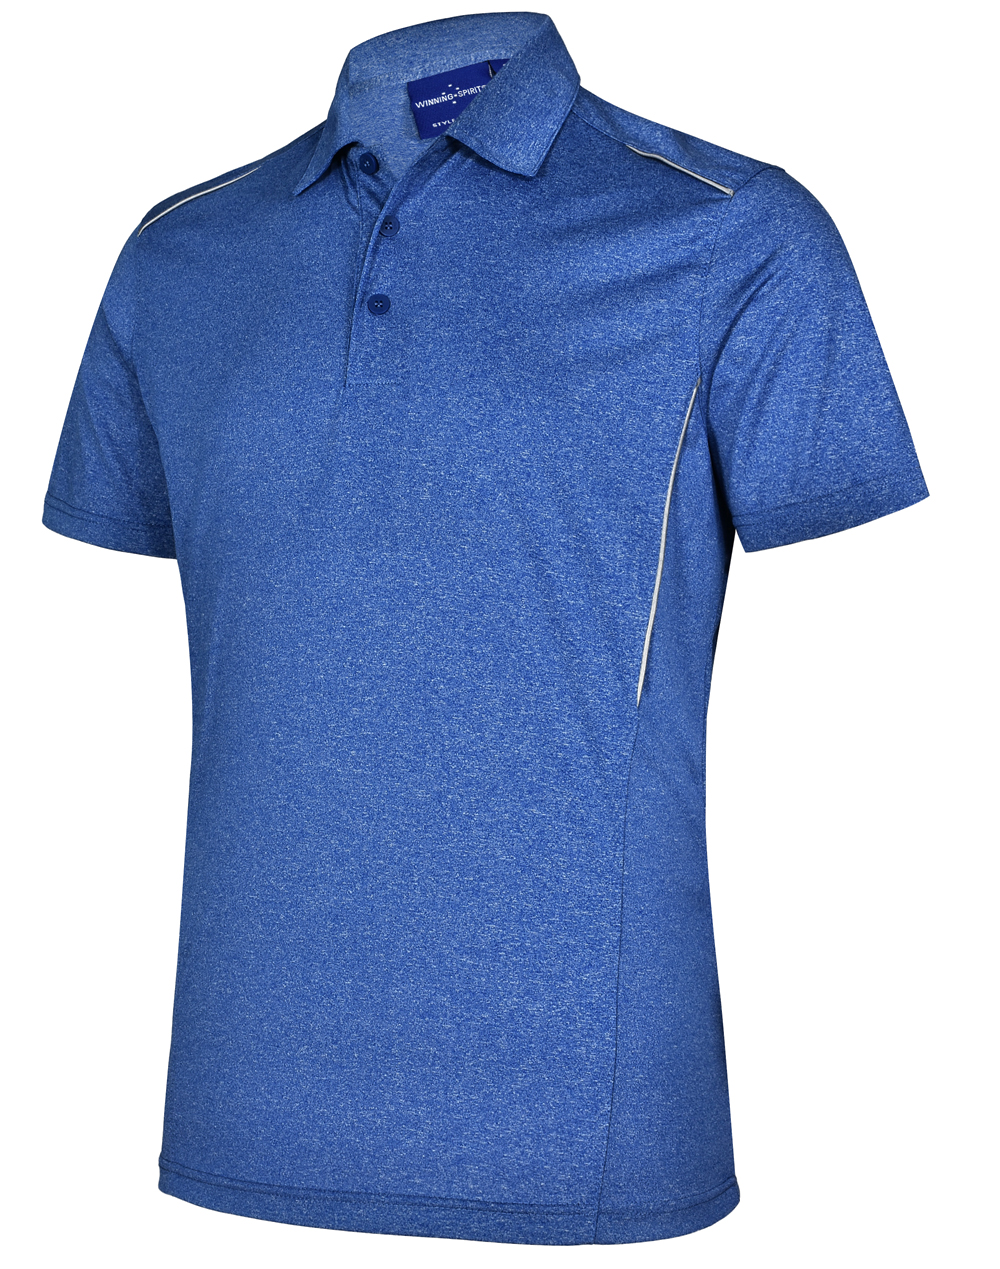 https://s3-ap-southeast-1.amazonaws.com/ws-imgs/POLOSHIRTS/PS85_Royal_Side.jpg